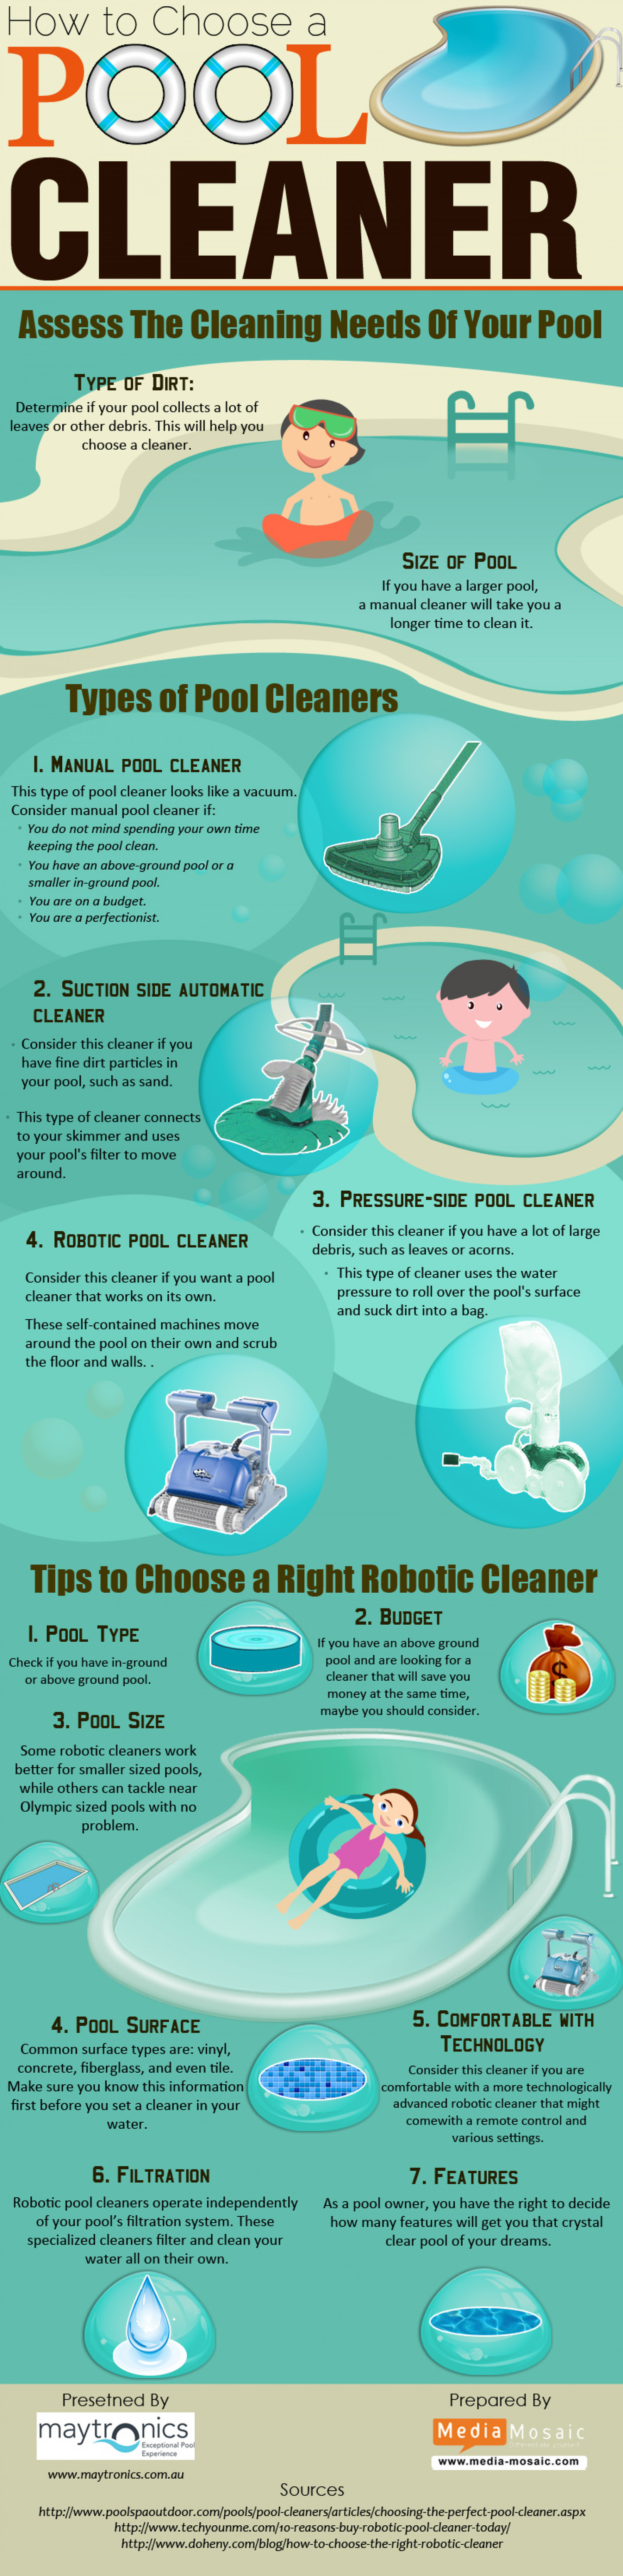 How to choose a pool cleaner [Info Graphic] Infographic